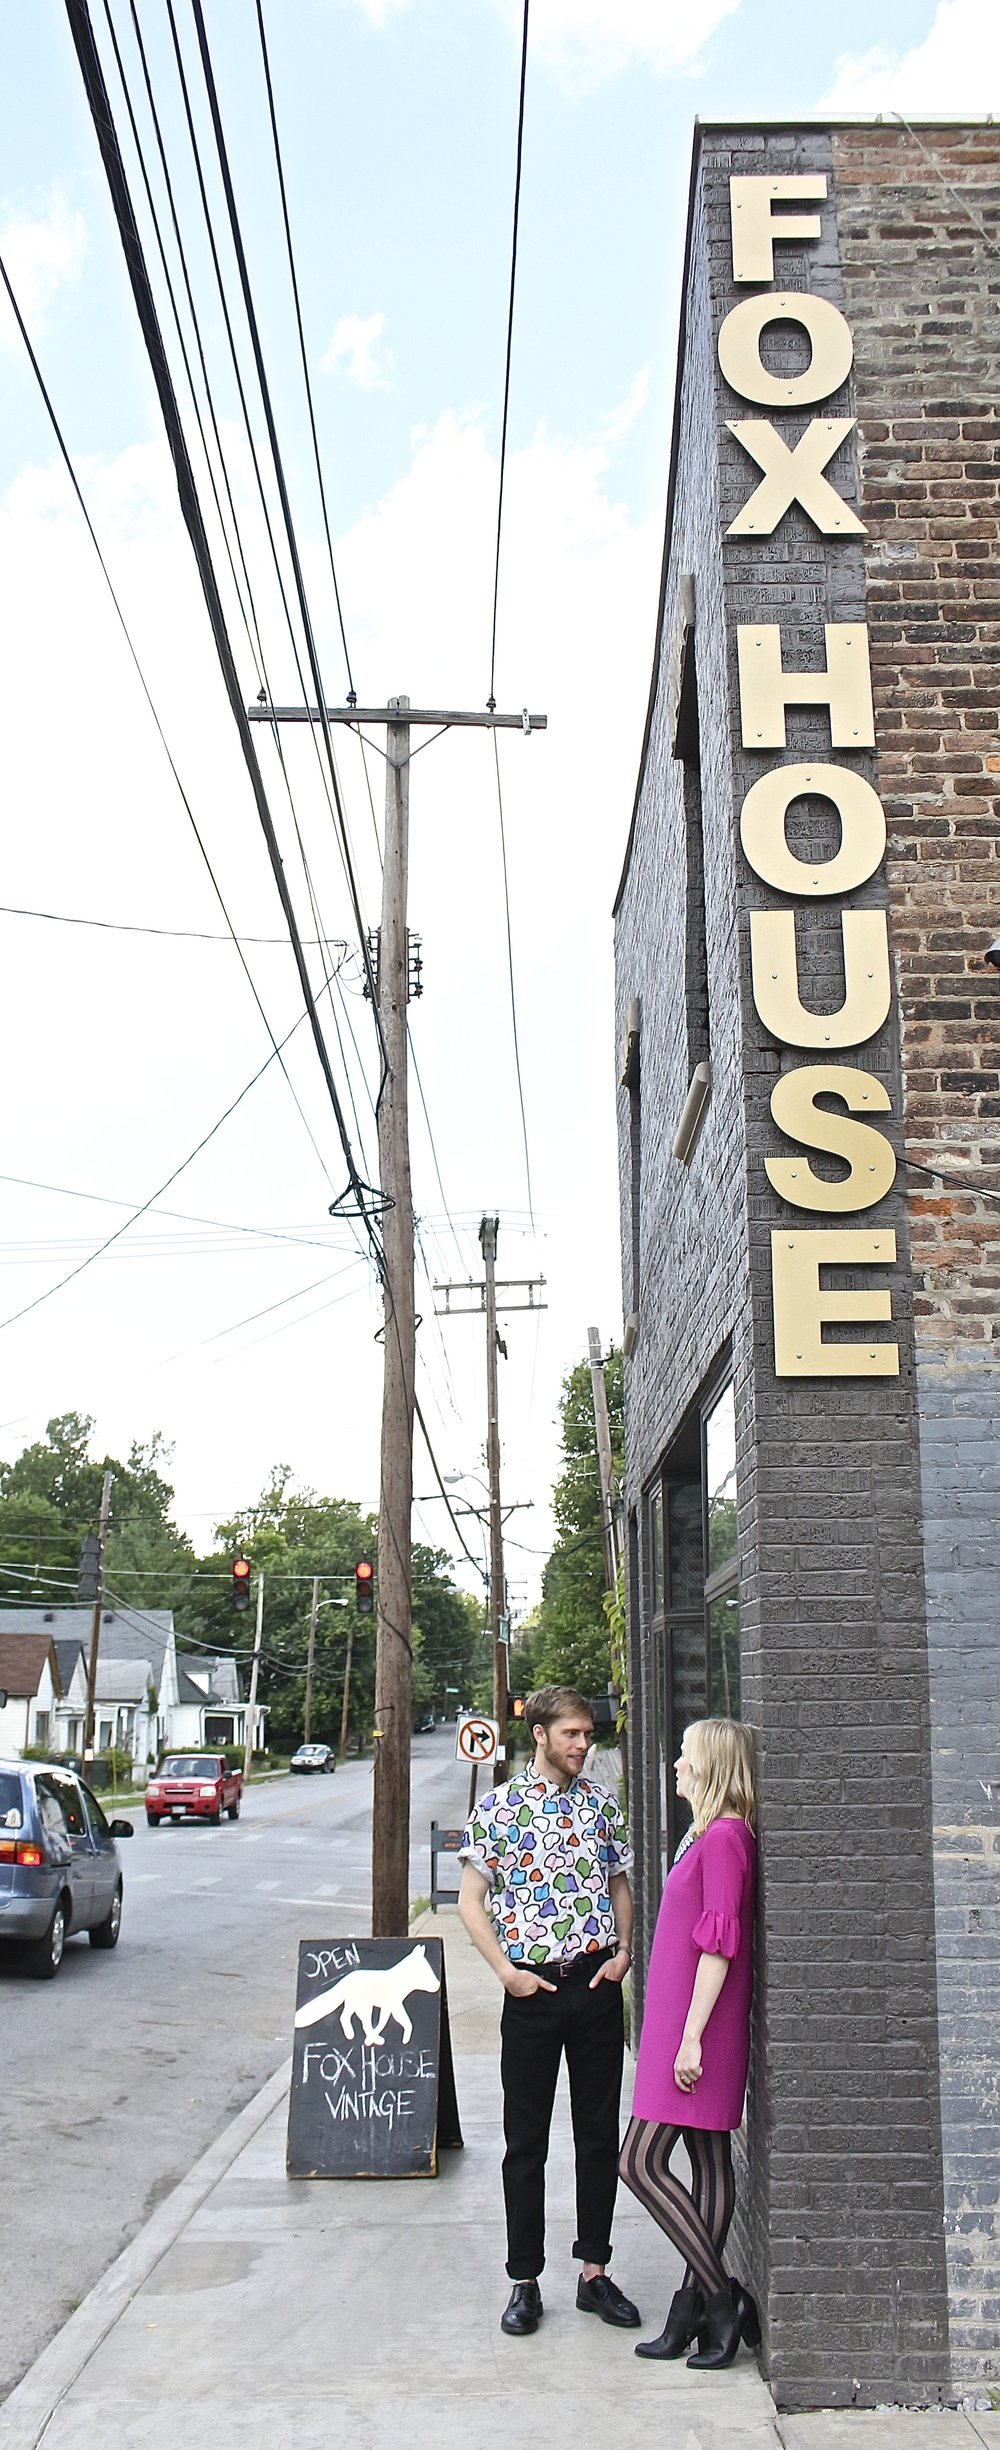 Foxhouse Vintage